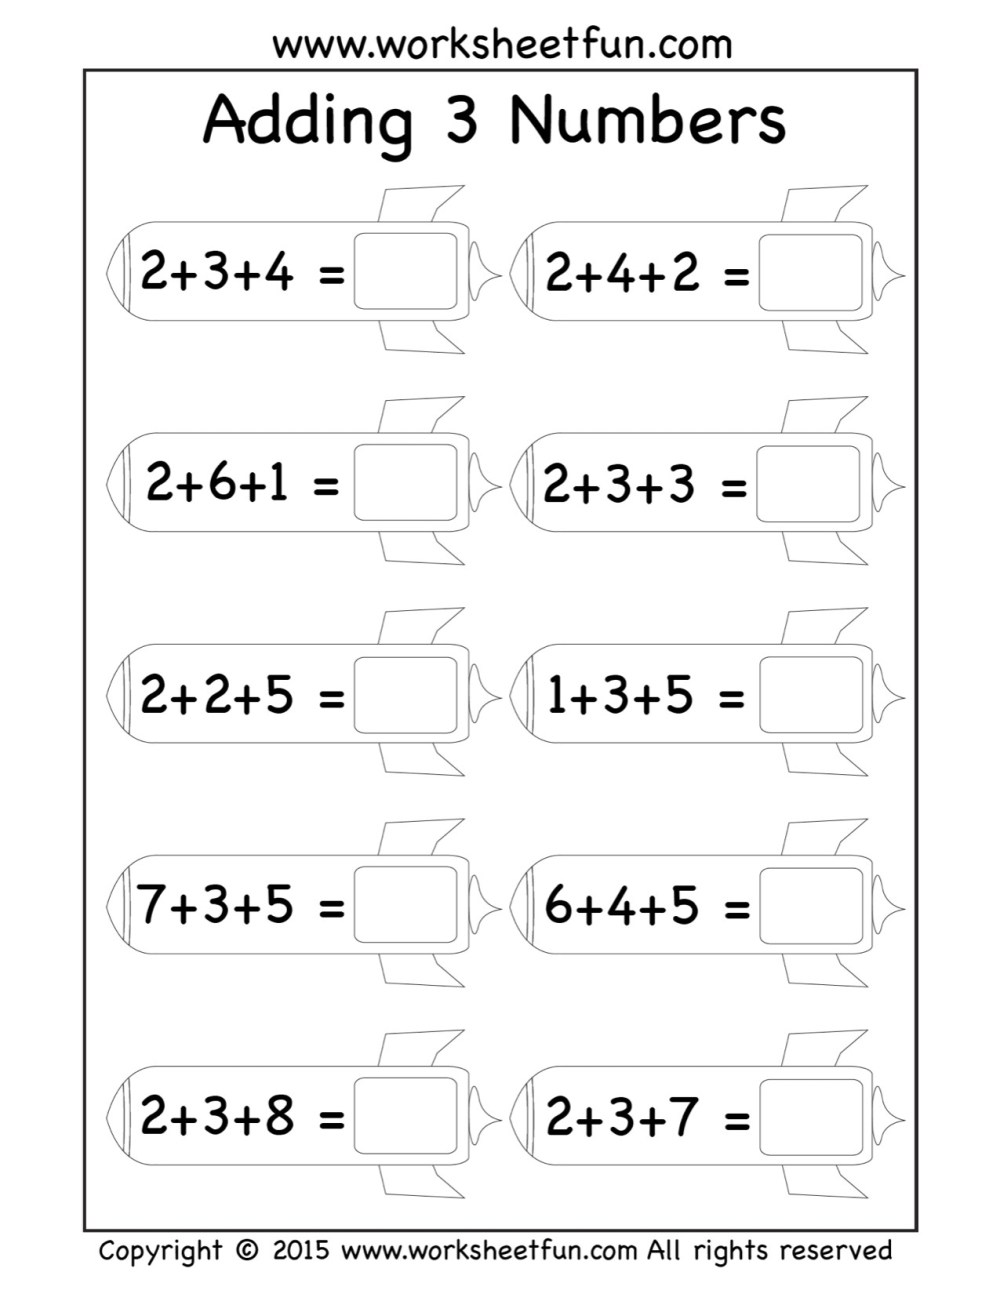 medium resolution of 5 Free Math Worksheets First Grade 1 Addition Add 2 Digit 1 Digit Numbers  Missing Addend No Regrouping - AMP